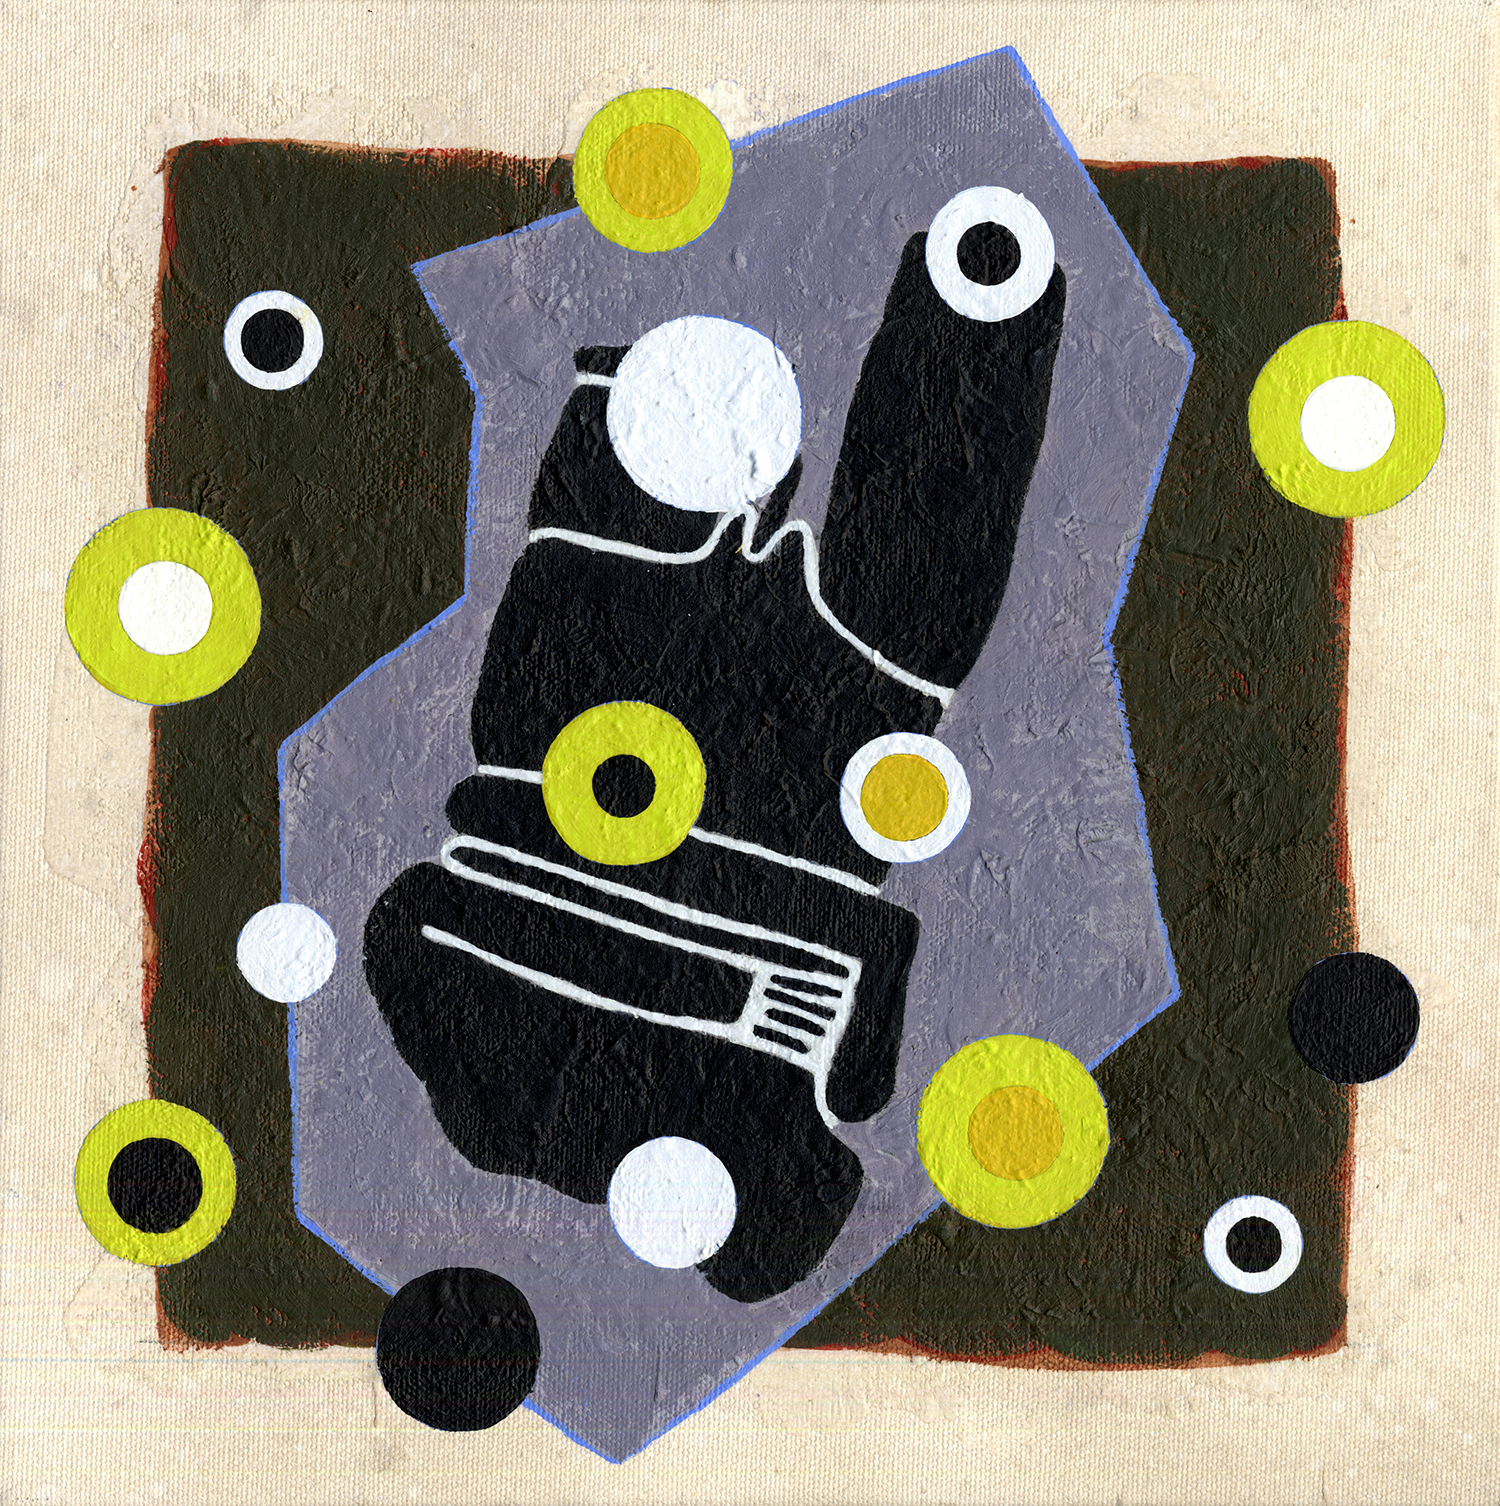 S124/Sq4  , 2011, oil and wax on canvas, 12 x 12 in.